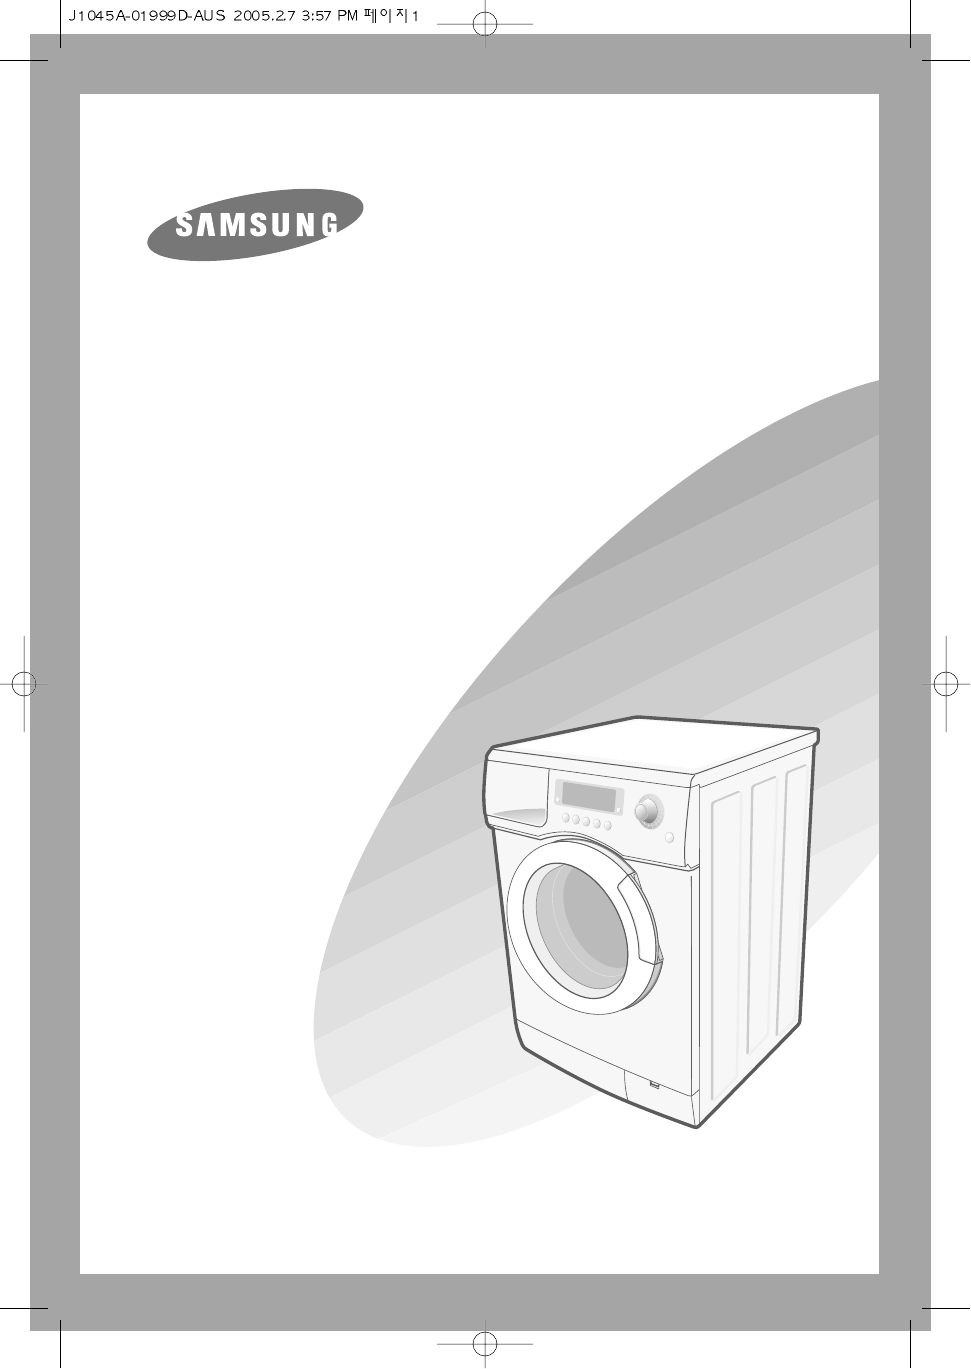 samsung washer dryer j1255 user guide manualsonline com rh laundry manualsonline com Samsung Dryer Parts Manual Samsung Washer ManualsOnline